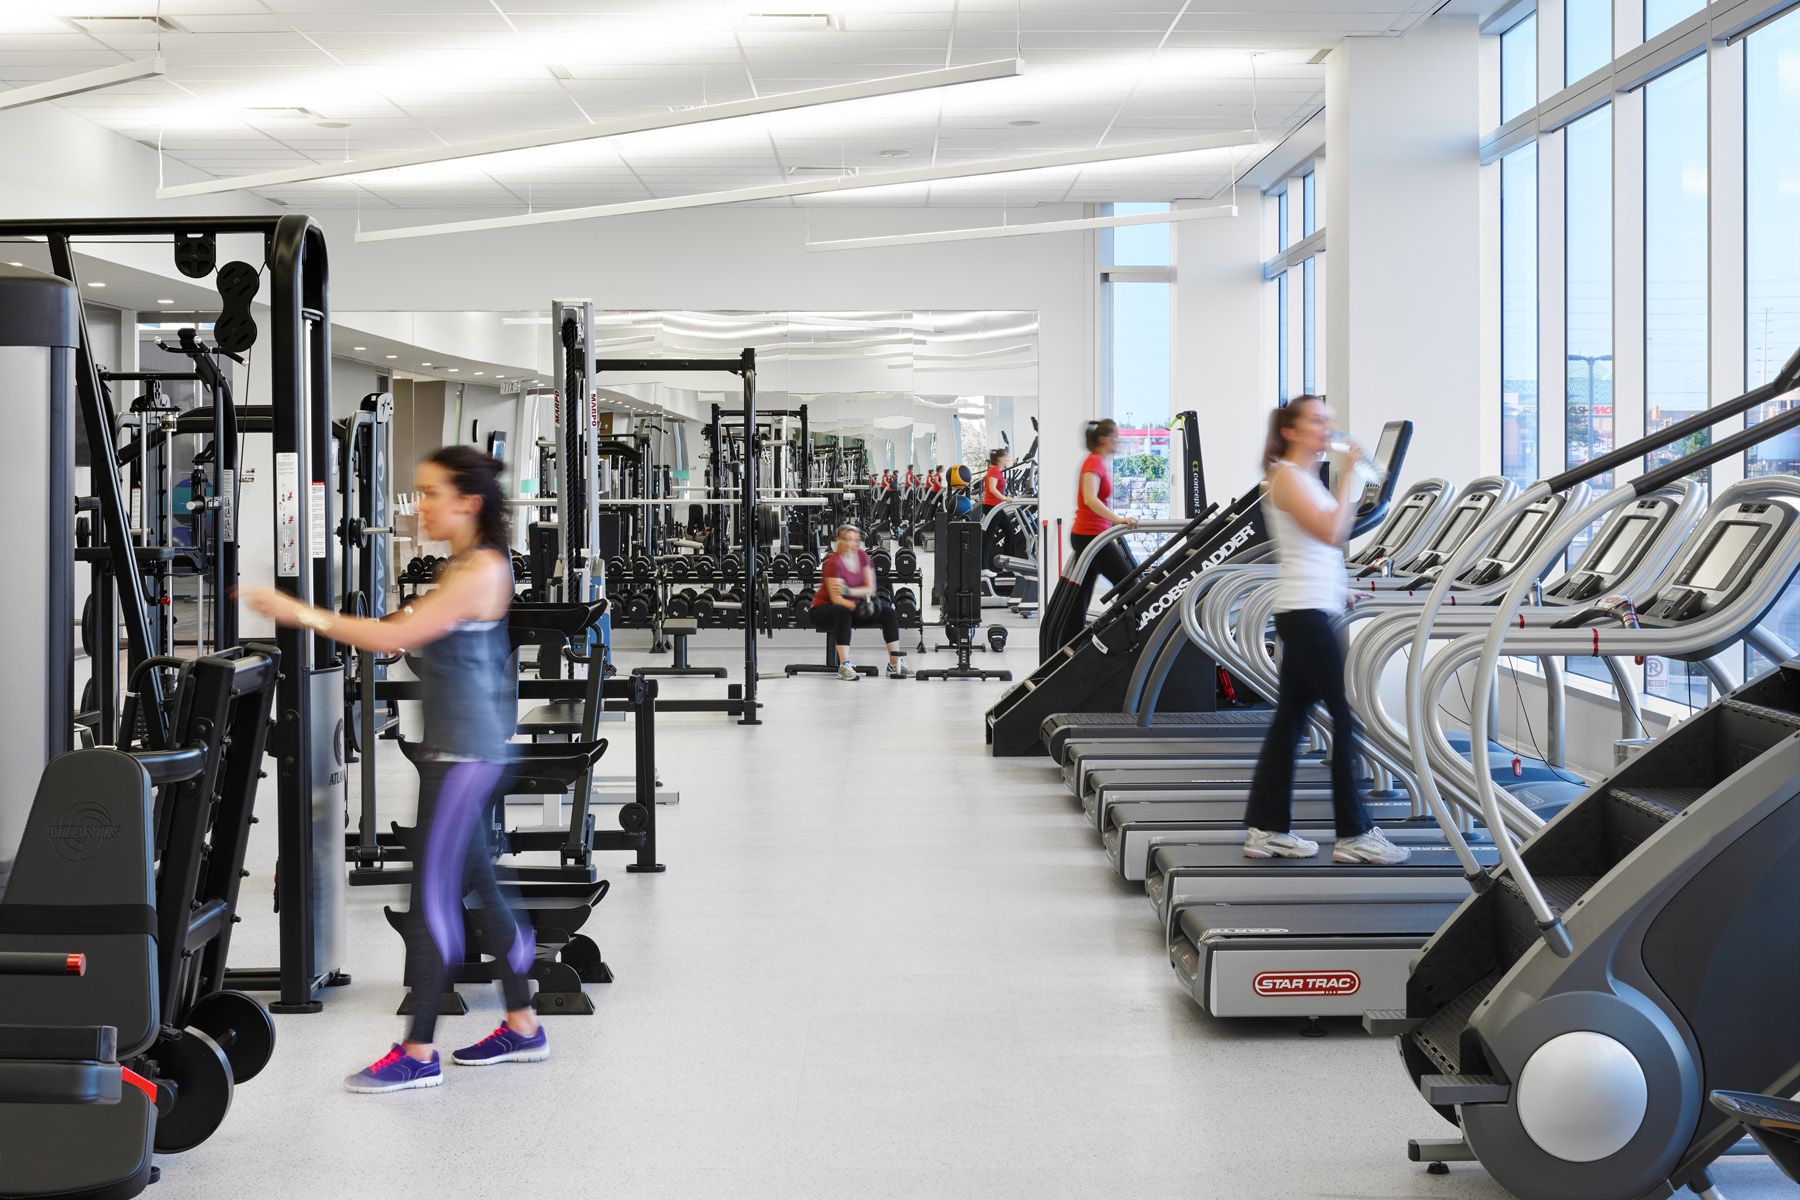 TJX employees using equipment in gym with large windows